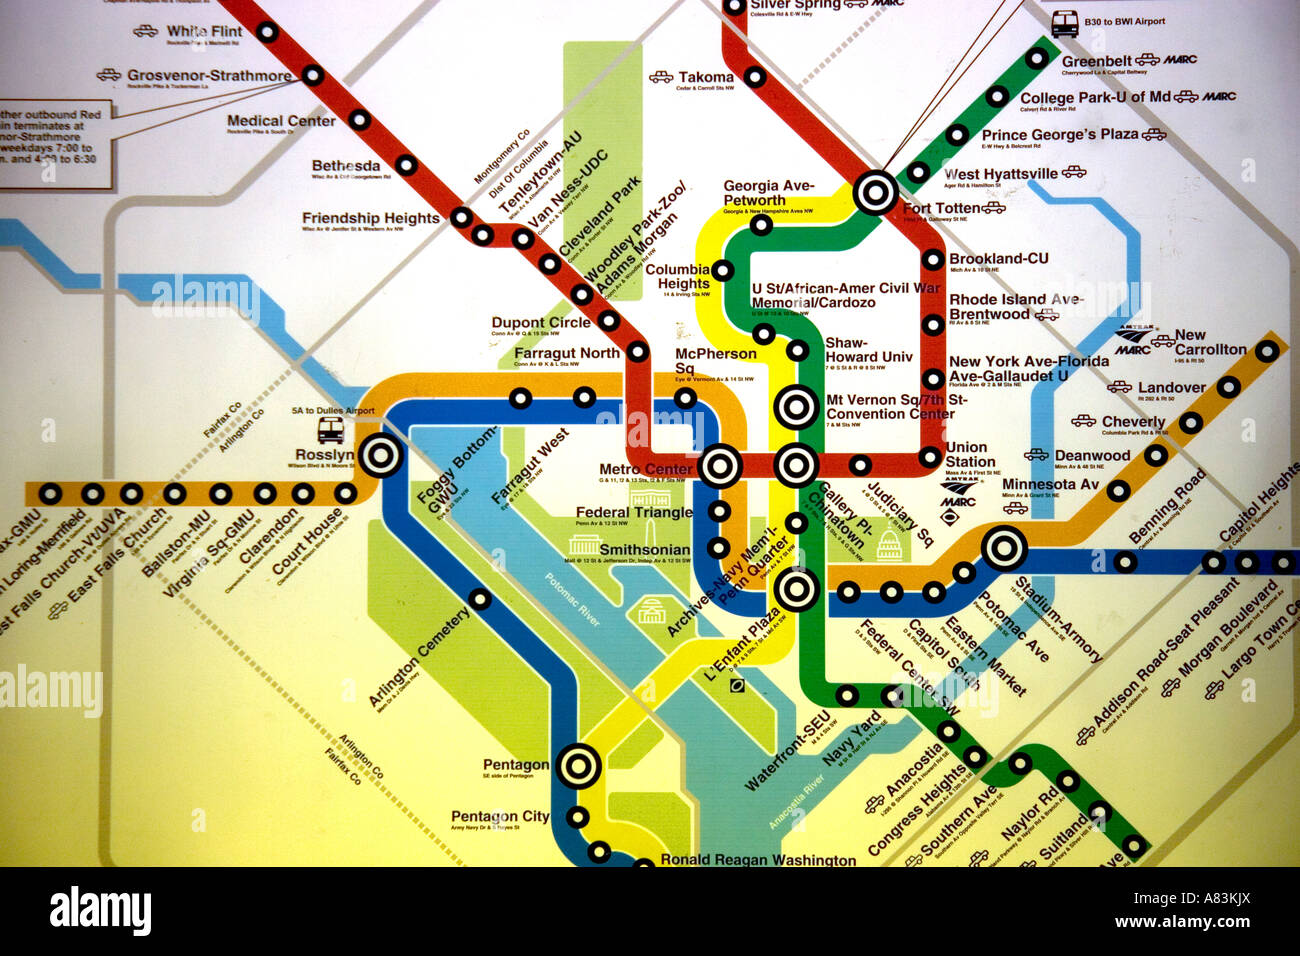 Map of the Metrorail system in Washington D C - Stock Image